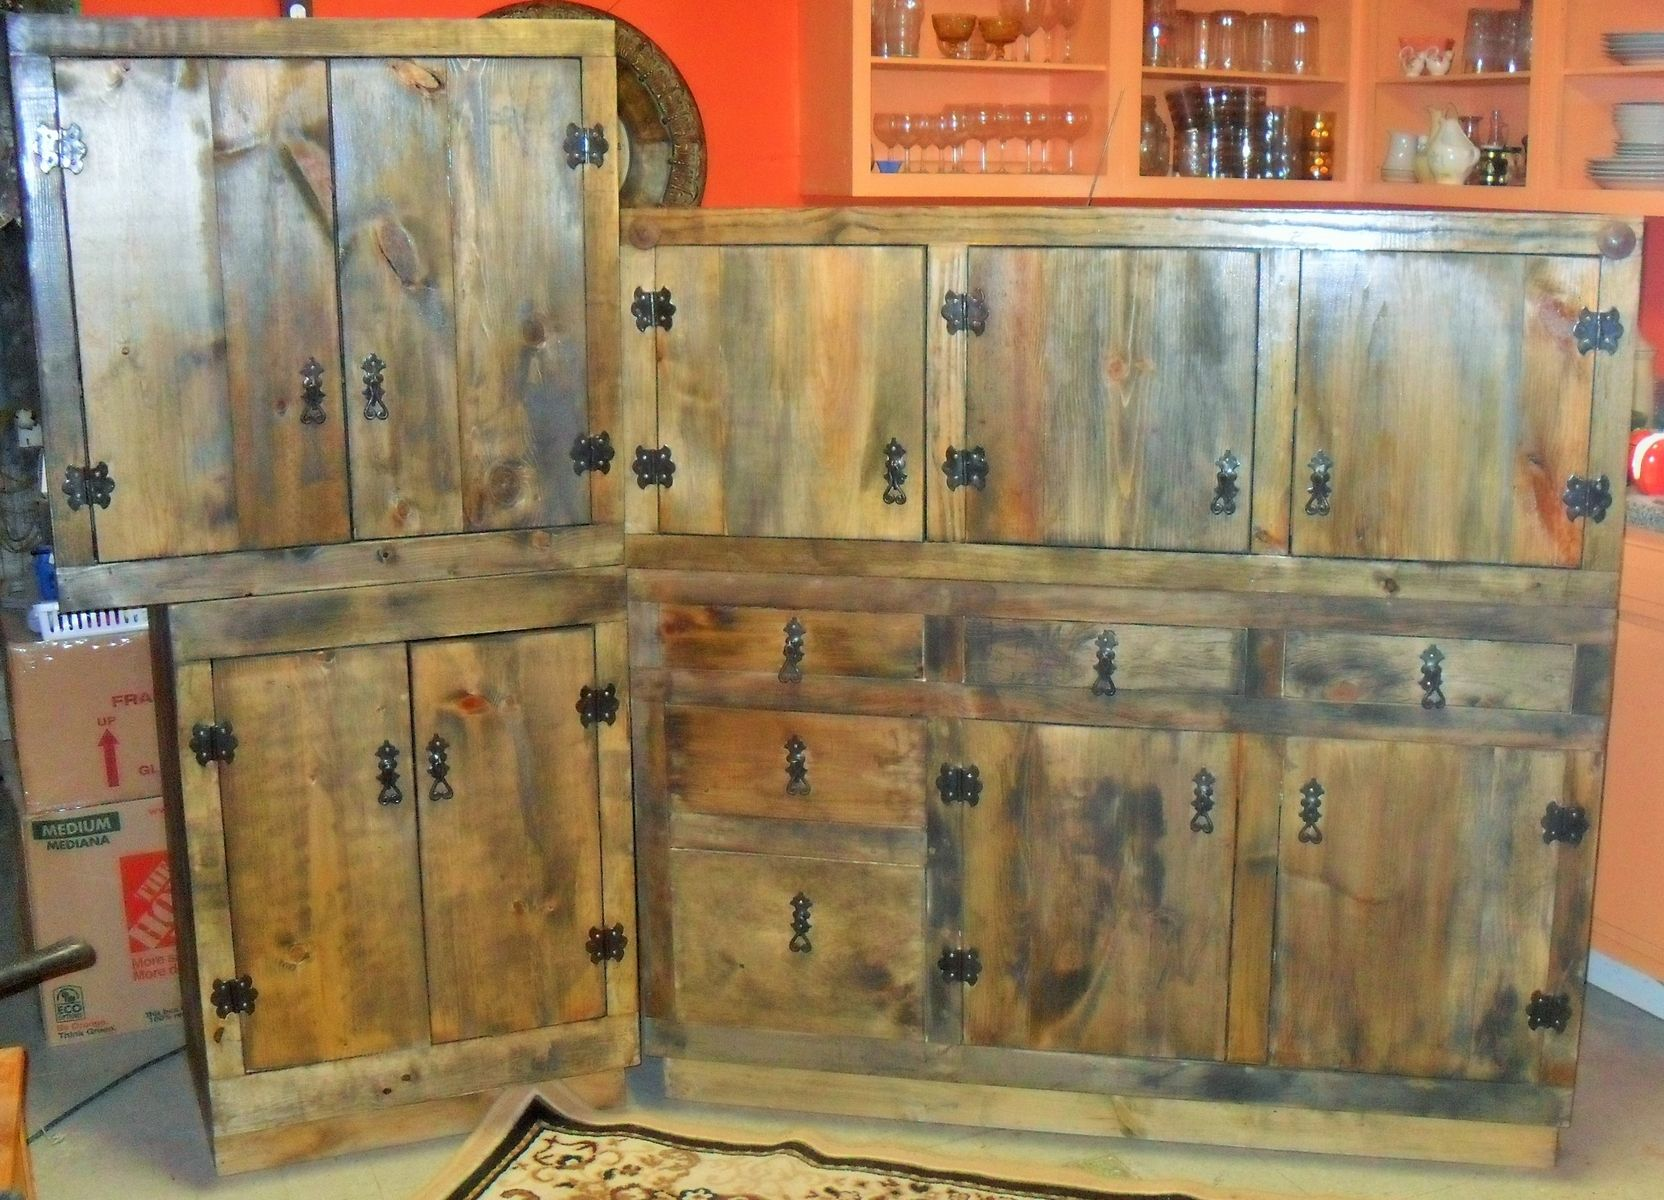 Hand made rustic kitchen cabinets by the bunk house studio for Rustic white kitchen cabinets